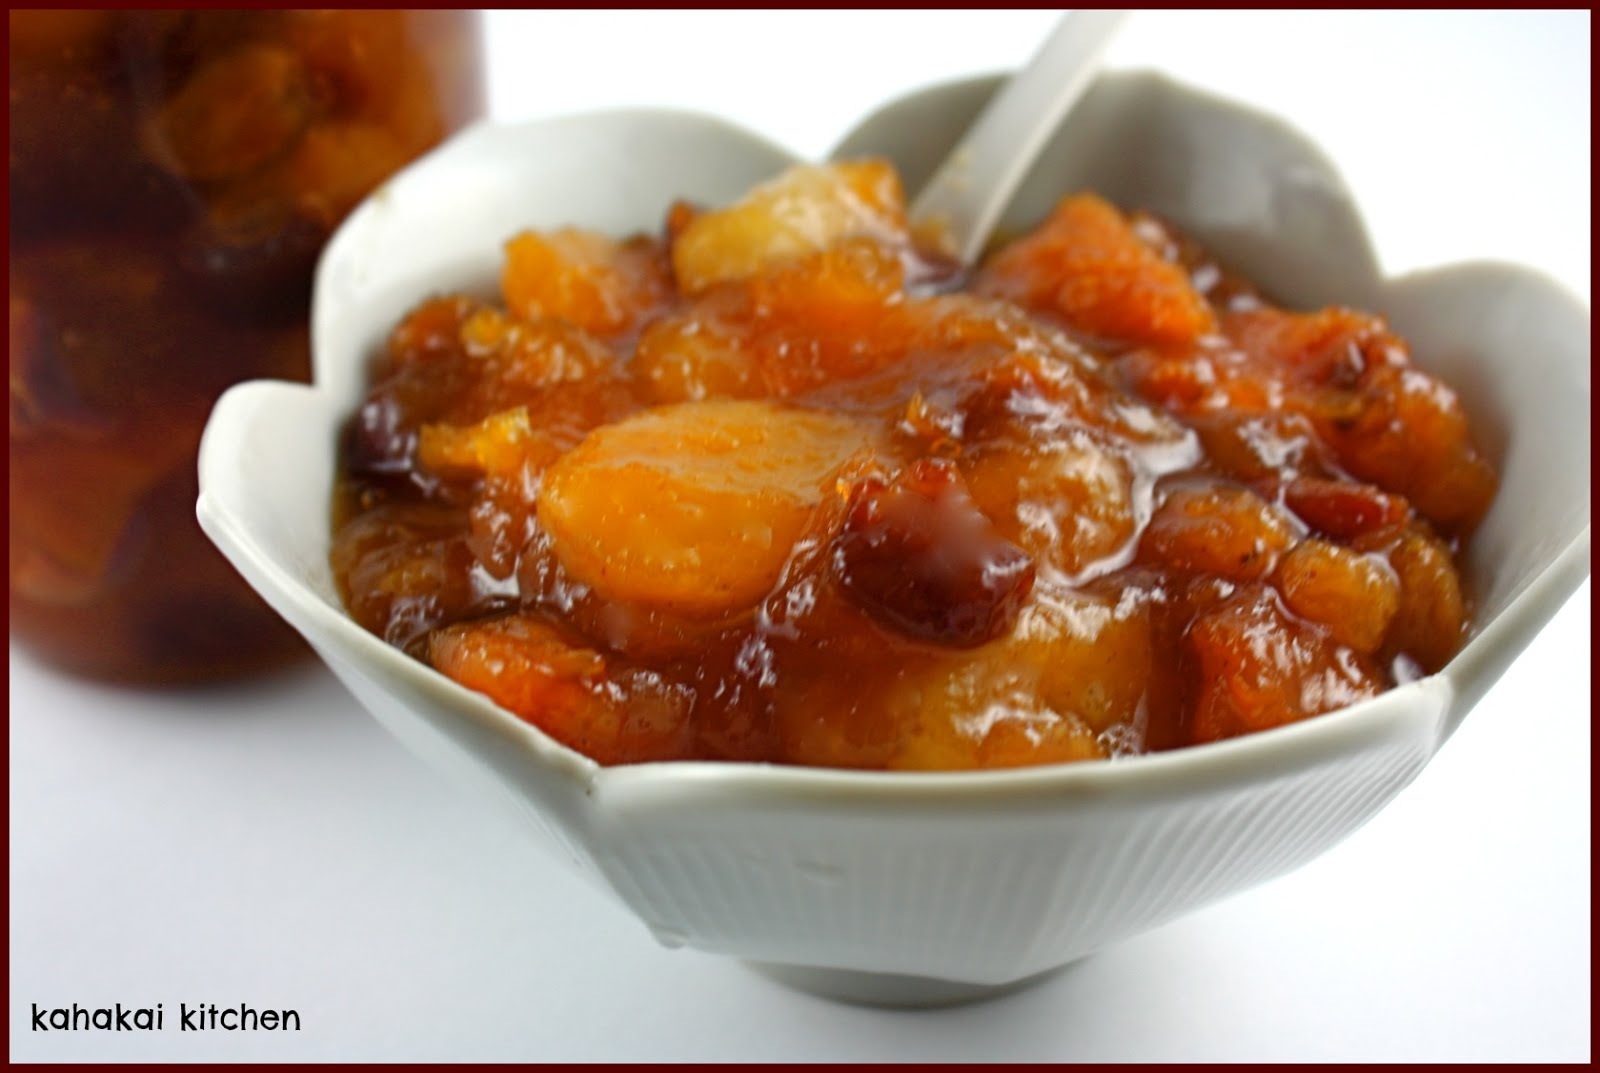 Kahakai Kitchen: Apple, Peach and Apricot Chutney: A Sweet-Sour-and ...